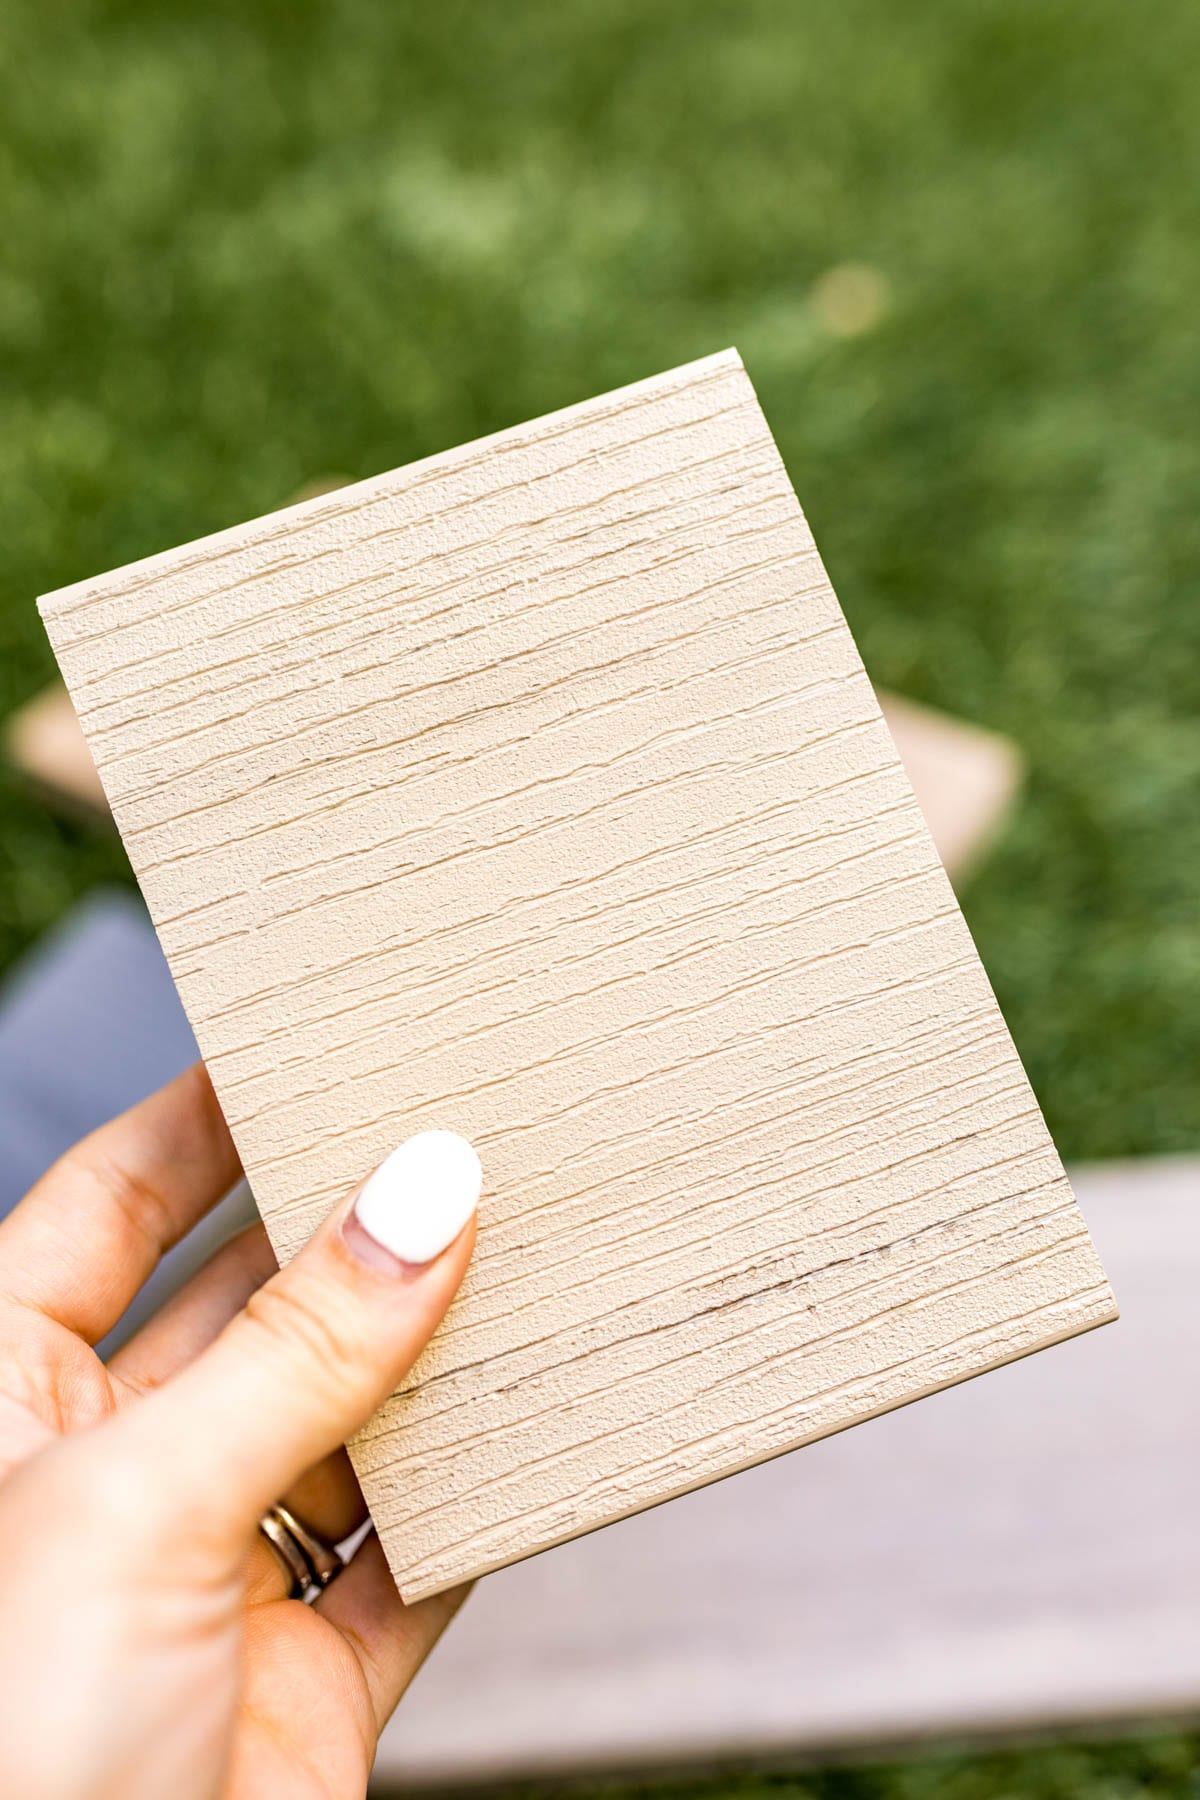 free decking samples and why you need decking samples when designing your deck // tips for designing the perfect deck //  Never Skip Brunch by Cara Newhart